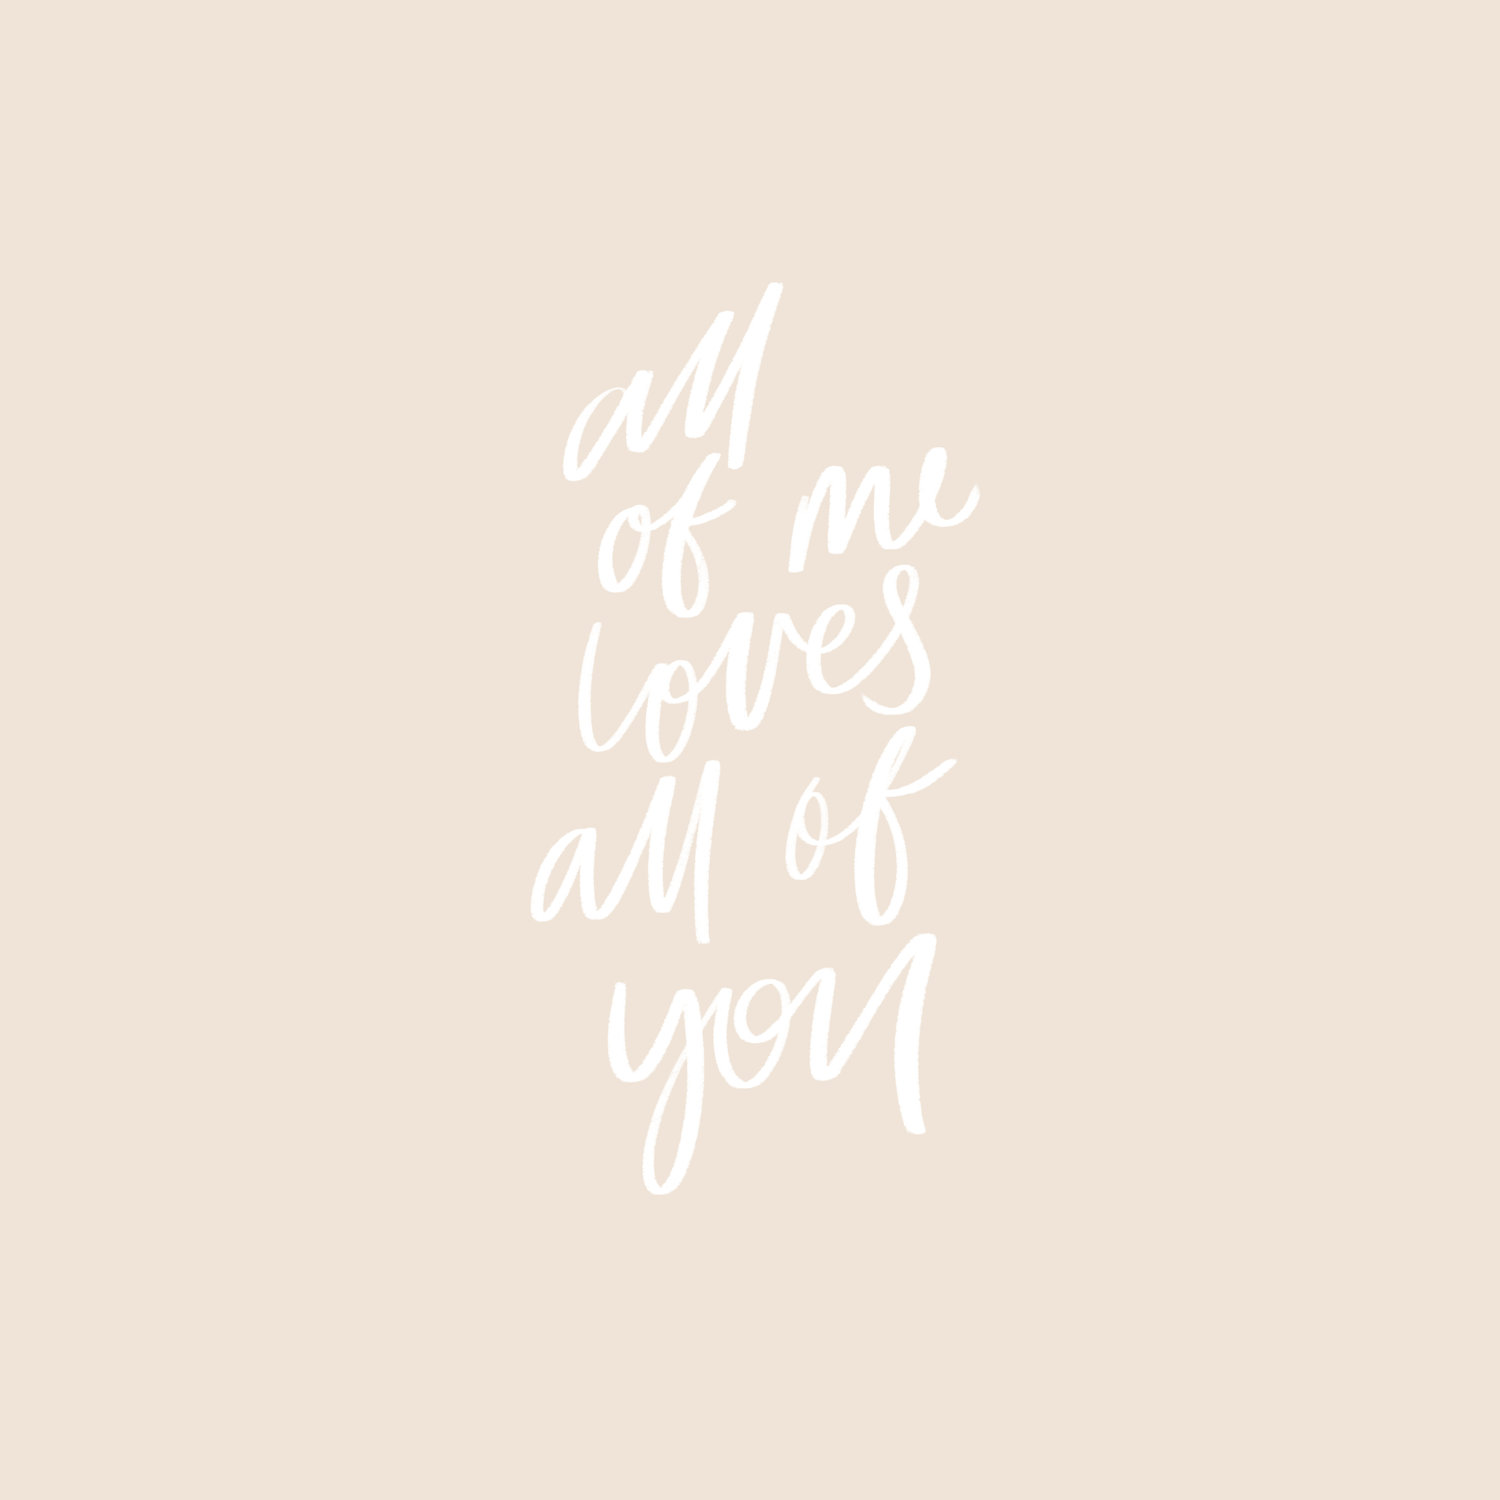 All+of+me+loves+all+of+you.jpeg